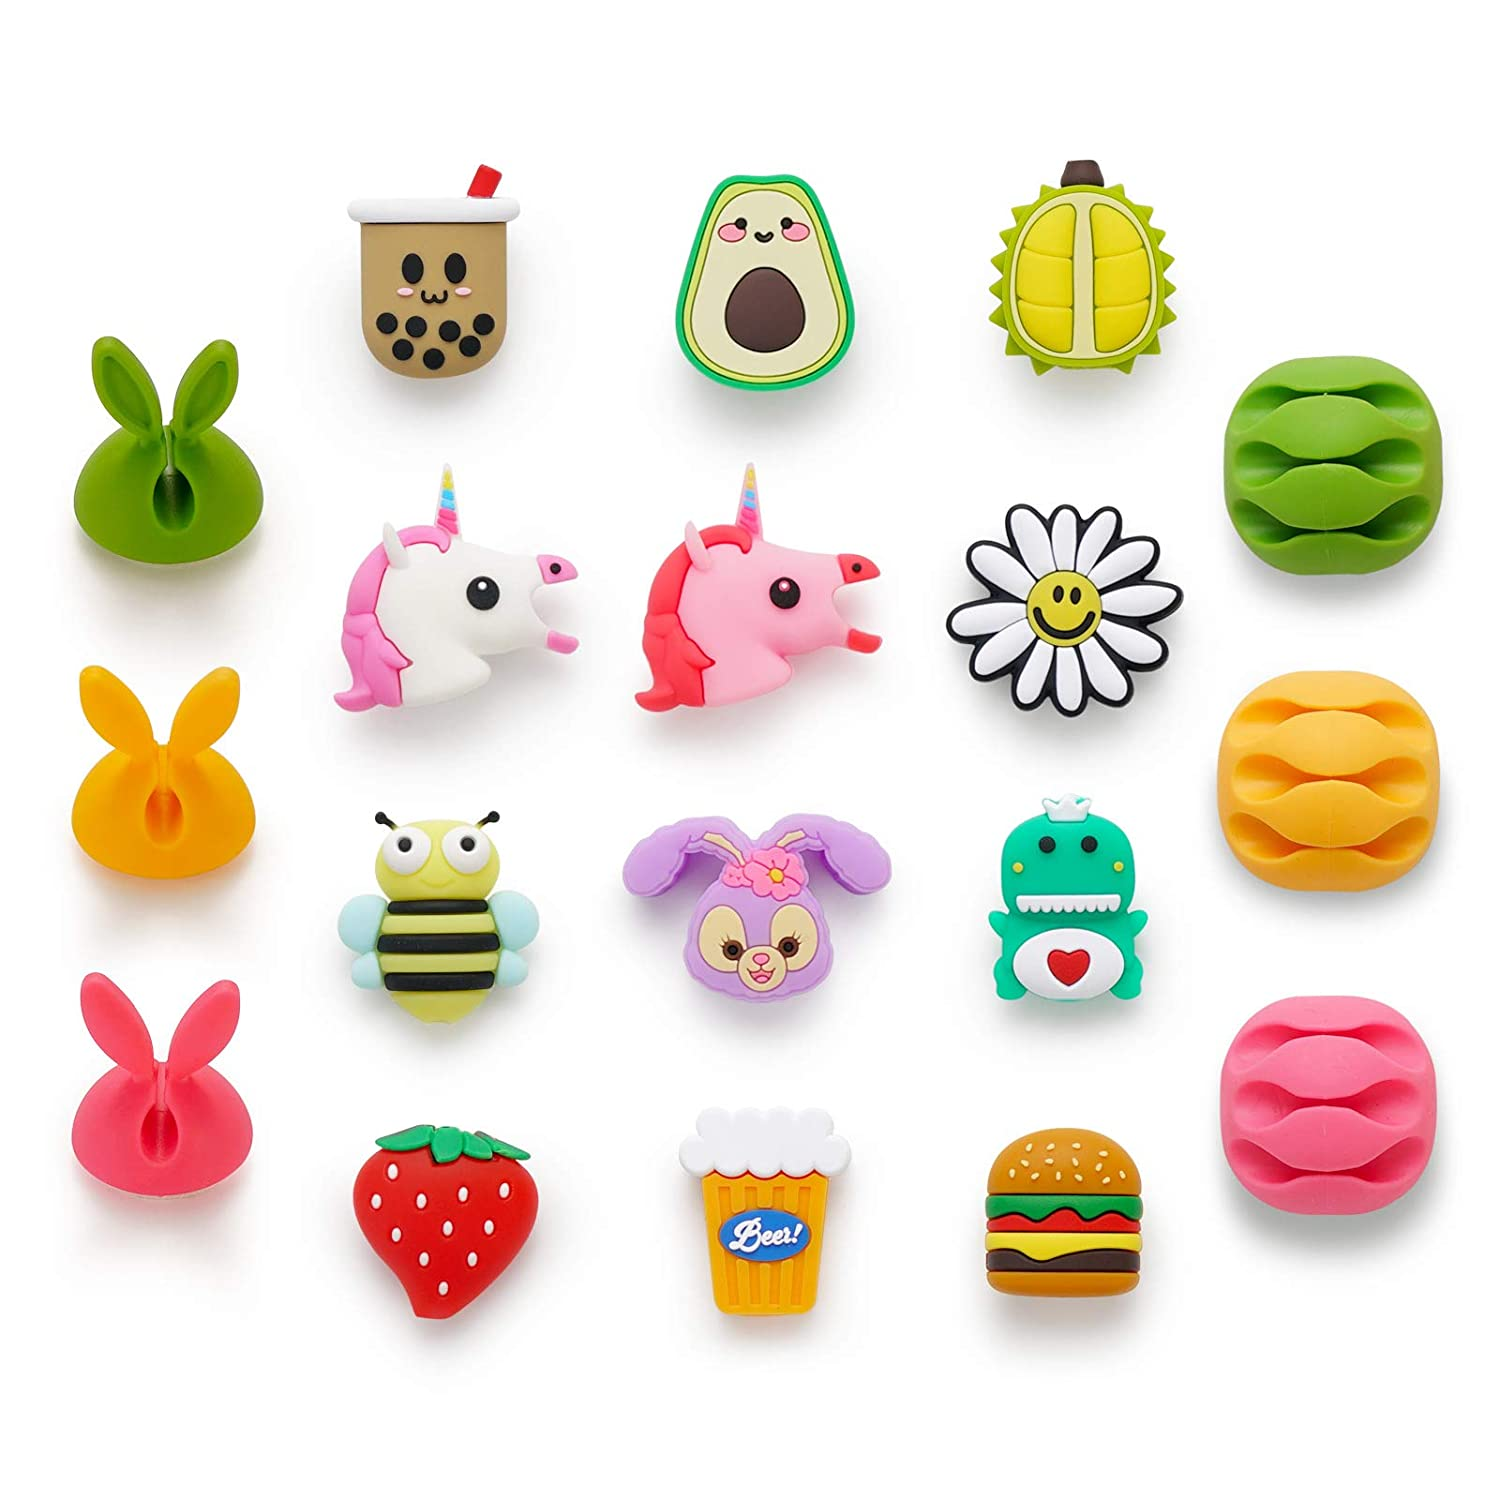 Cute Cable Protector,18 Pack USB Cable Protector for iPhone/ipad Charger, Animal Bite Charging Cord Protector and Holder, Charging Cable Saver Phone Accessory Protect USB Charger